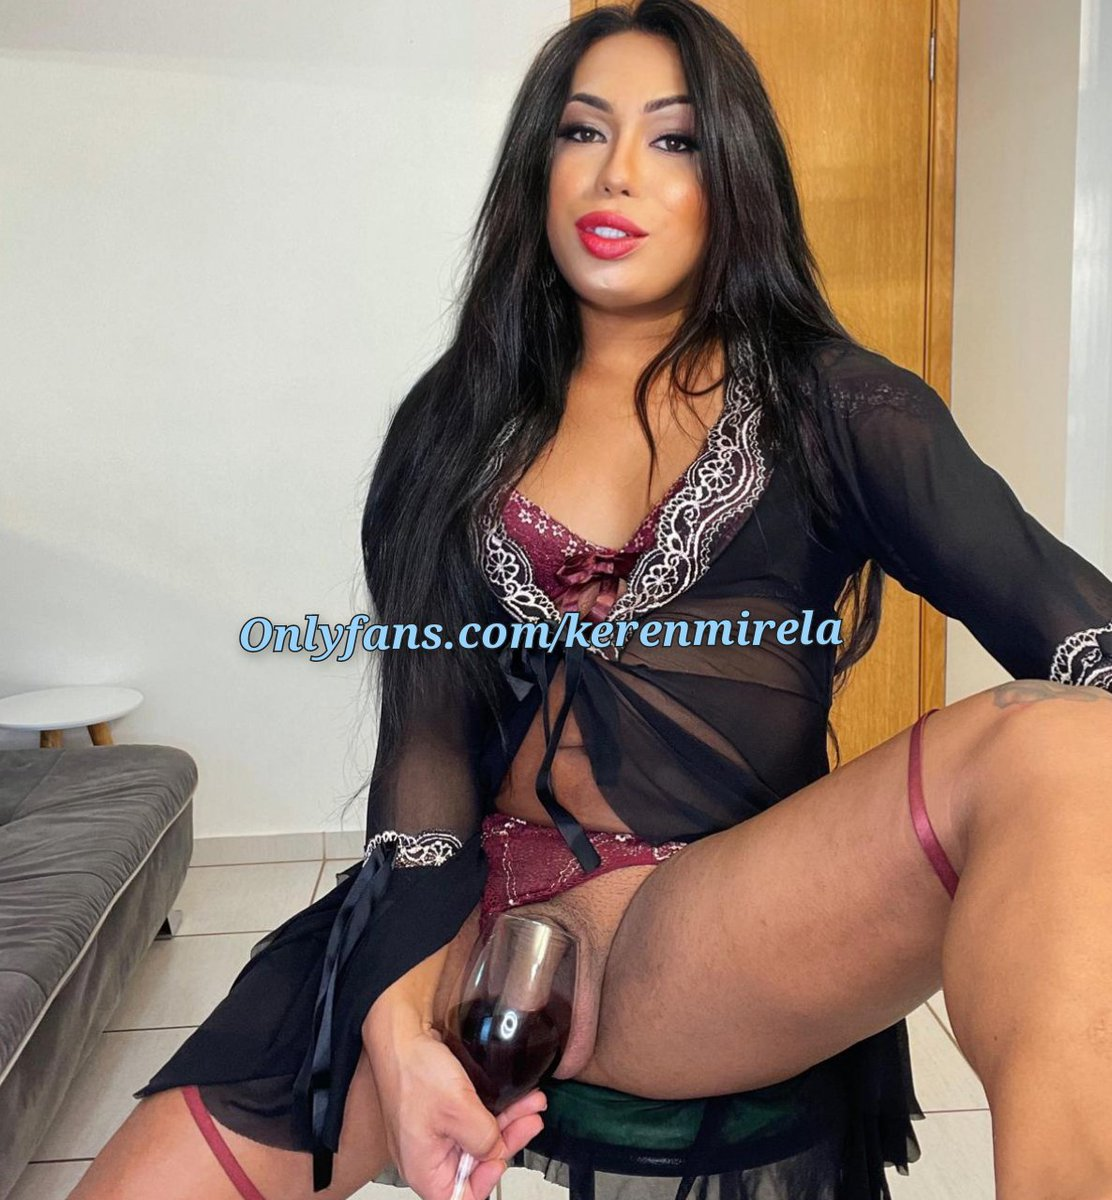 good morning my loves my platform is full of new exclusive photos go there and subscribe to have access ✨Onlyfans.com/kerenmirela ✨ Rt loves 🔞